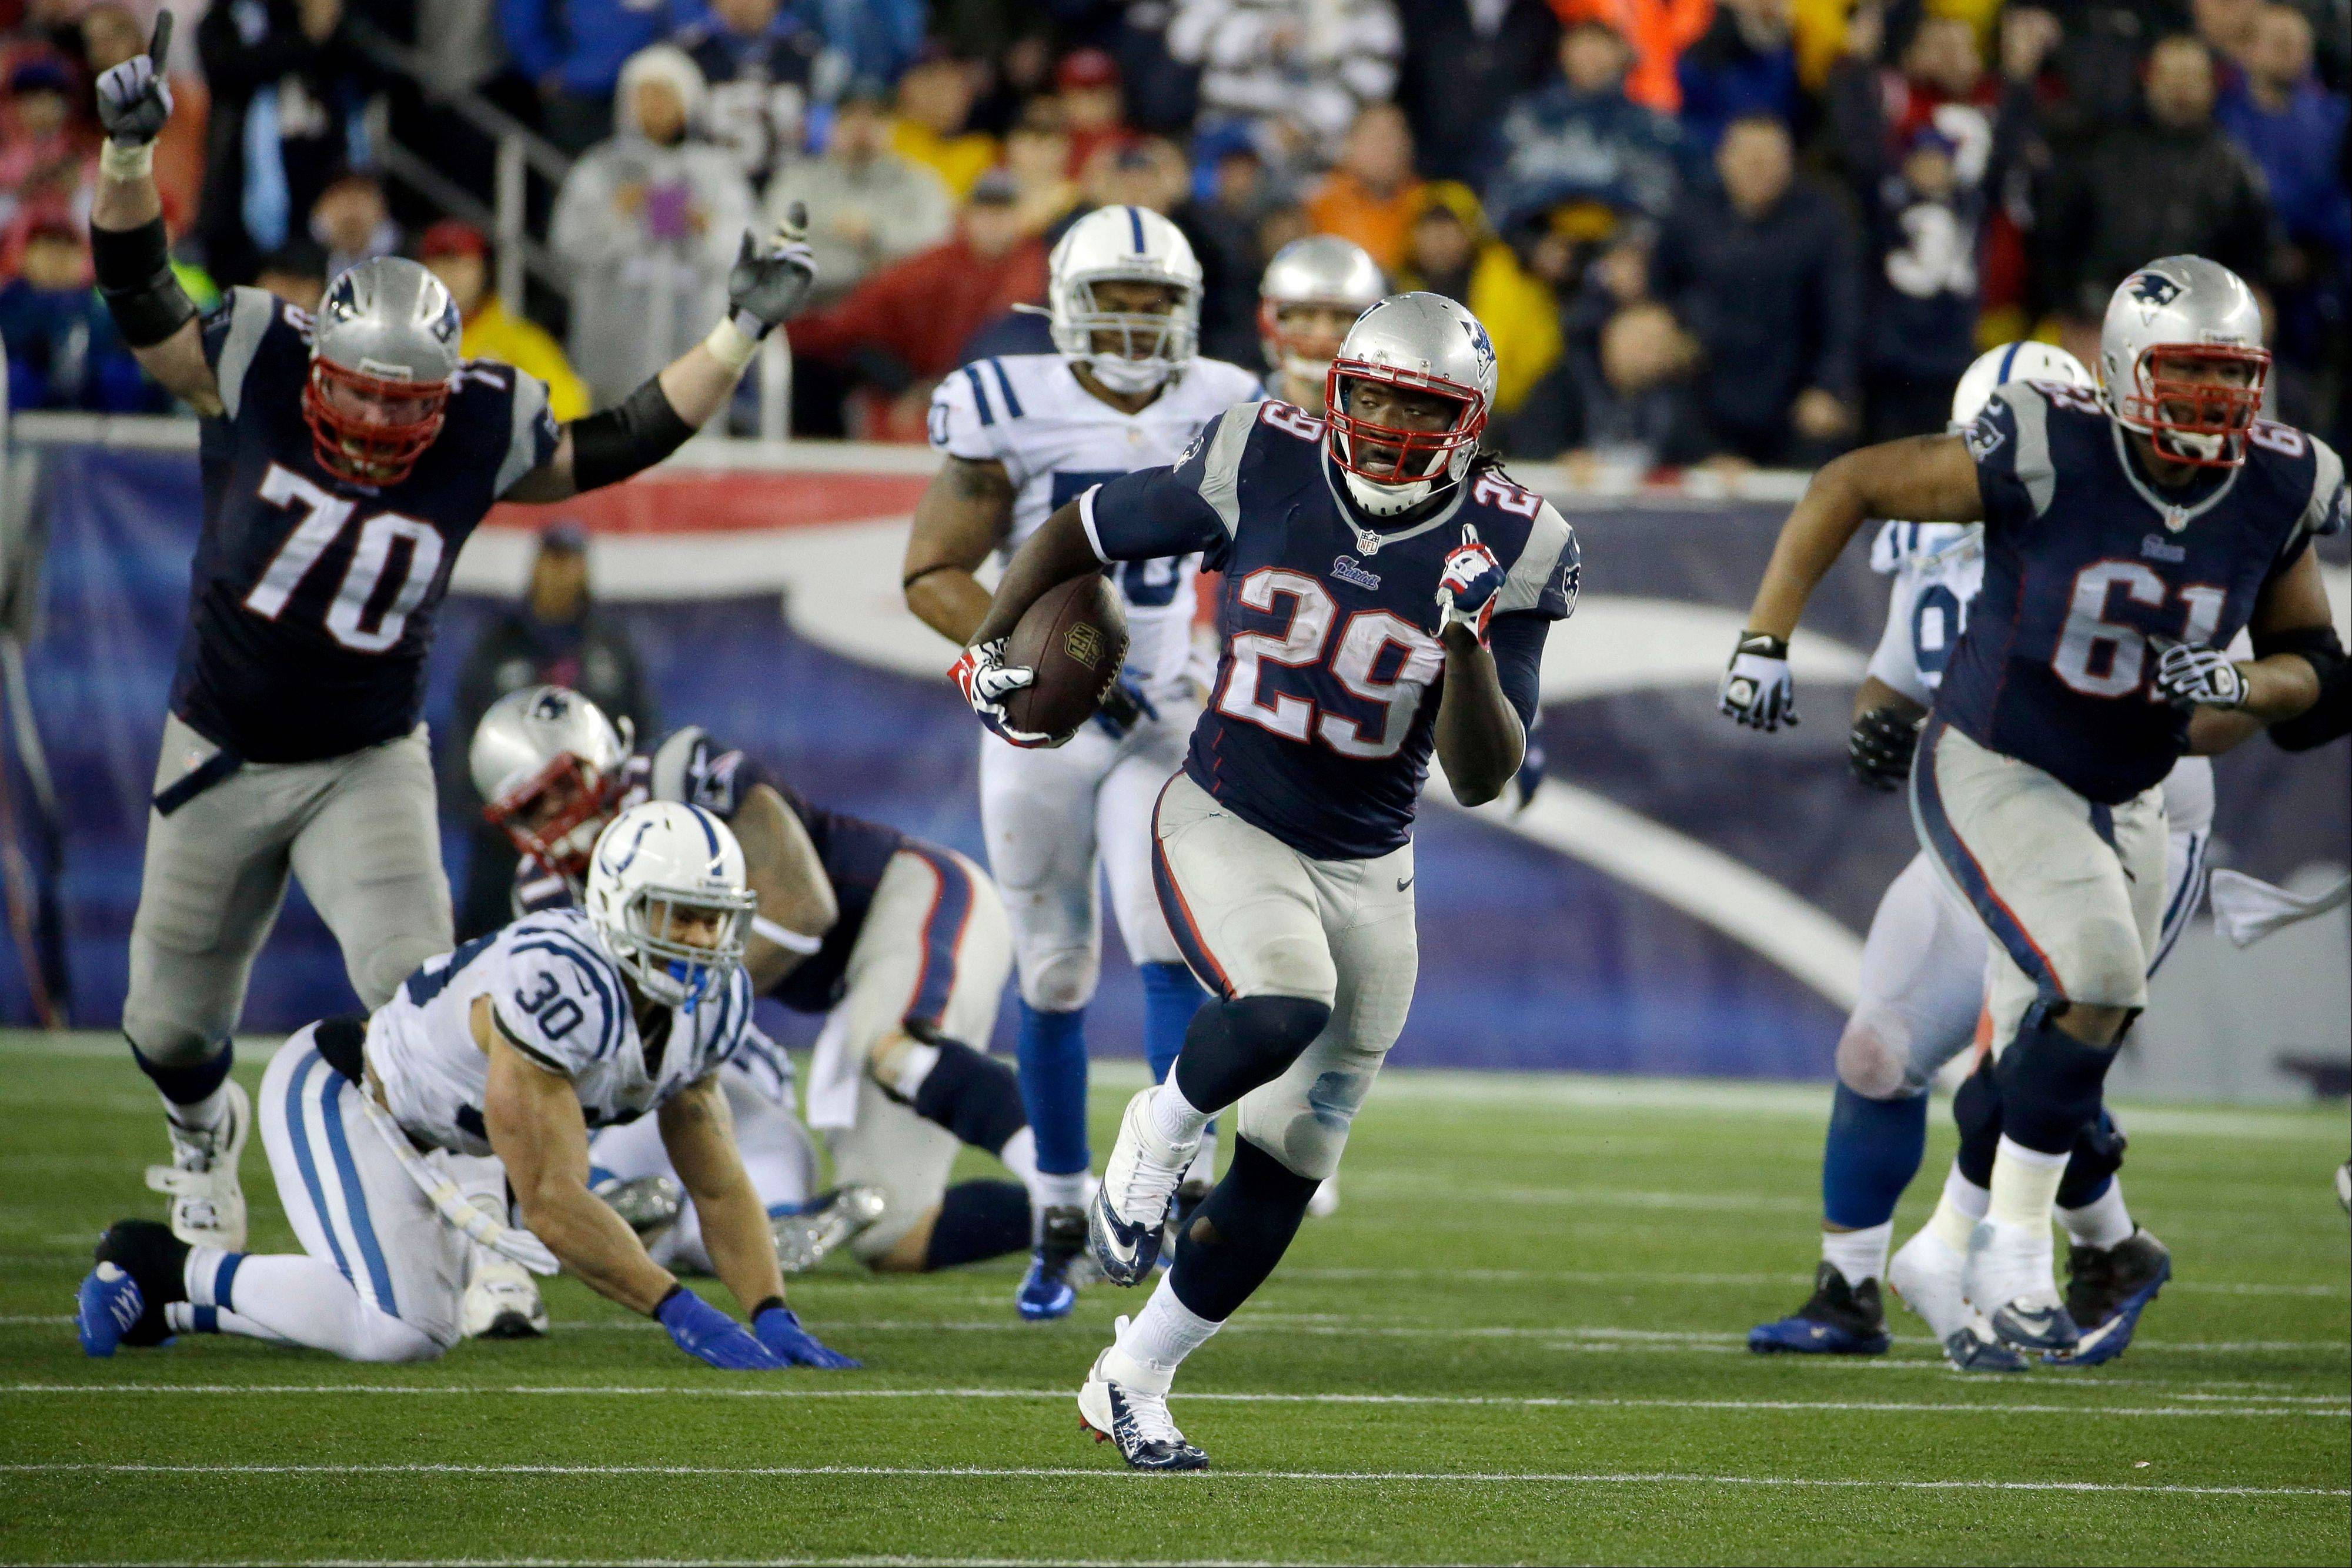 New England Patriots running back LeGarrette Blount heads downfield for a touchdown (his fourth in the game) as the Patriots ran past the Indianapolis Colts to advance to the AFC Championship game.